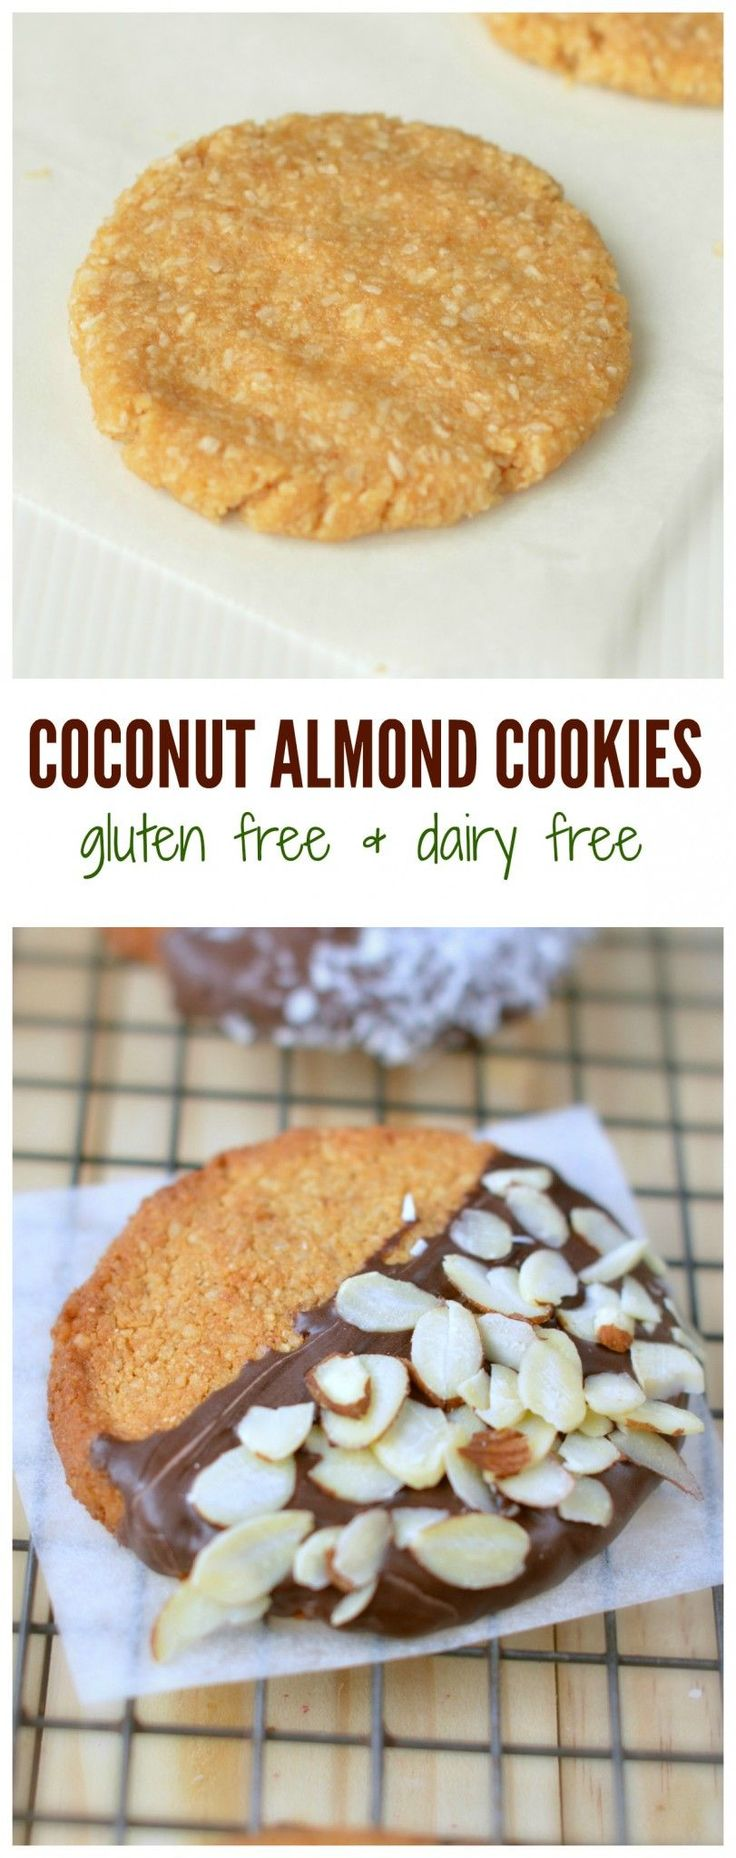 ... Almond cookies, Gluten free, dairy free and refined sugar free